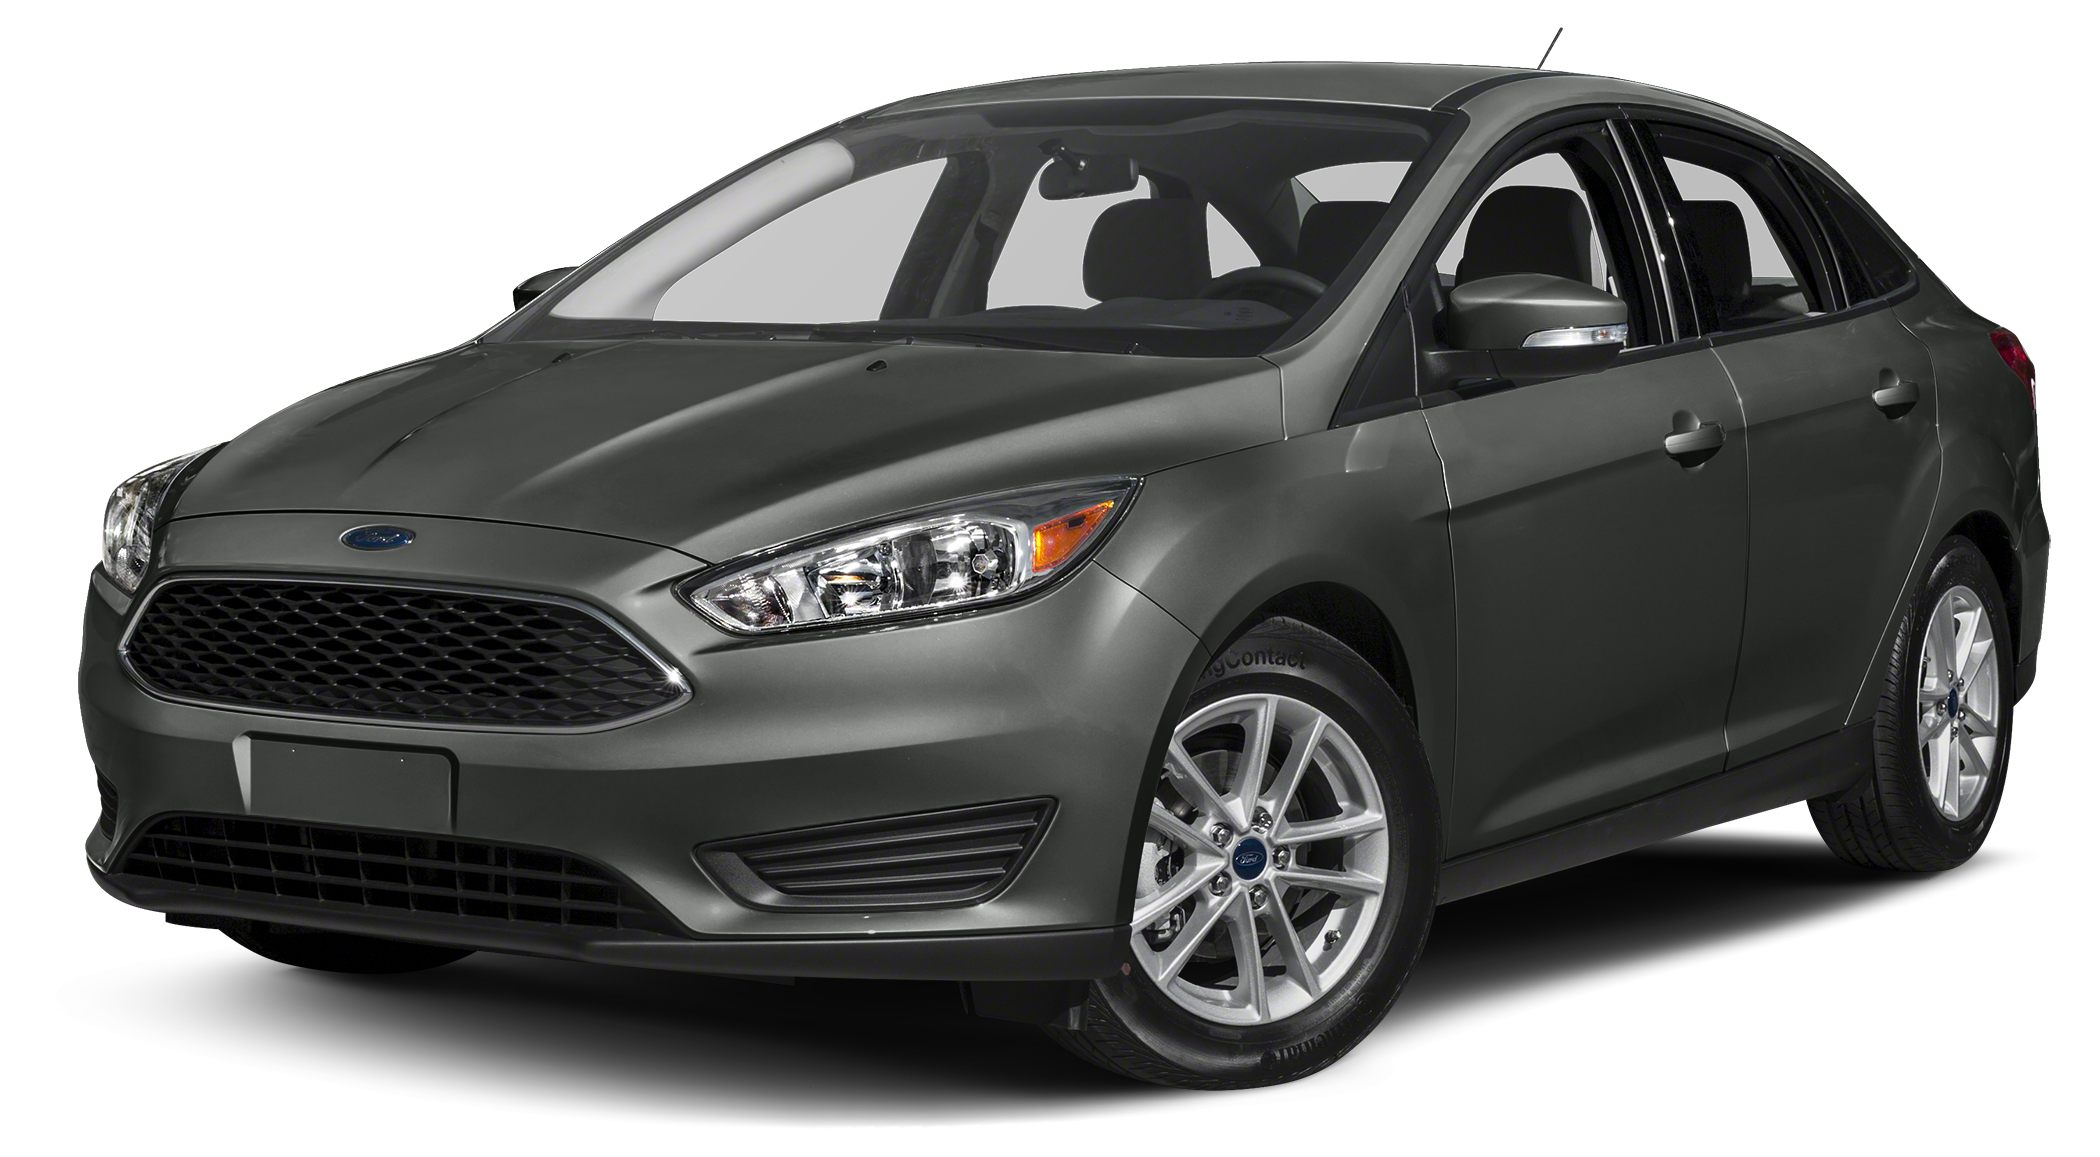 2018 Ford Focus S 2018 Ford Focus S 3425 HighwayCity MPG Price includes 2500 - Retail Custome